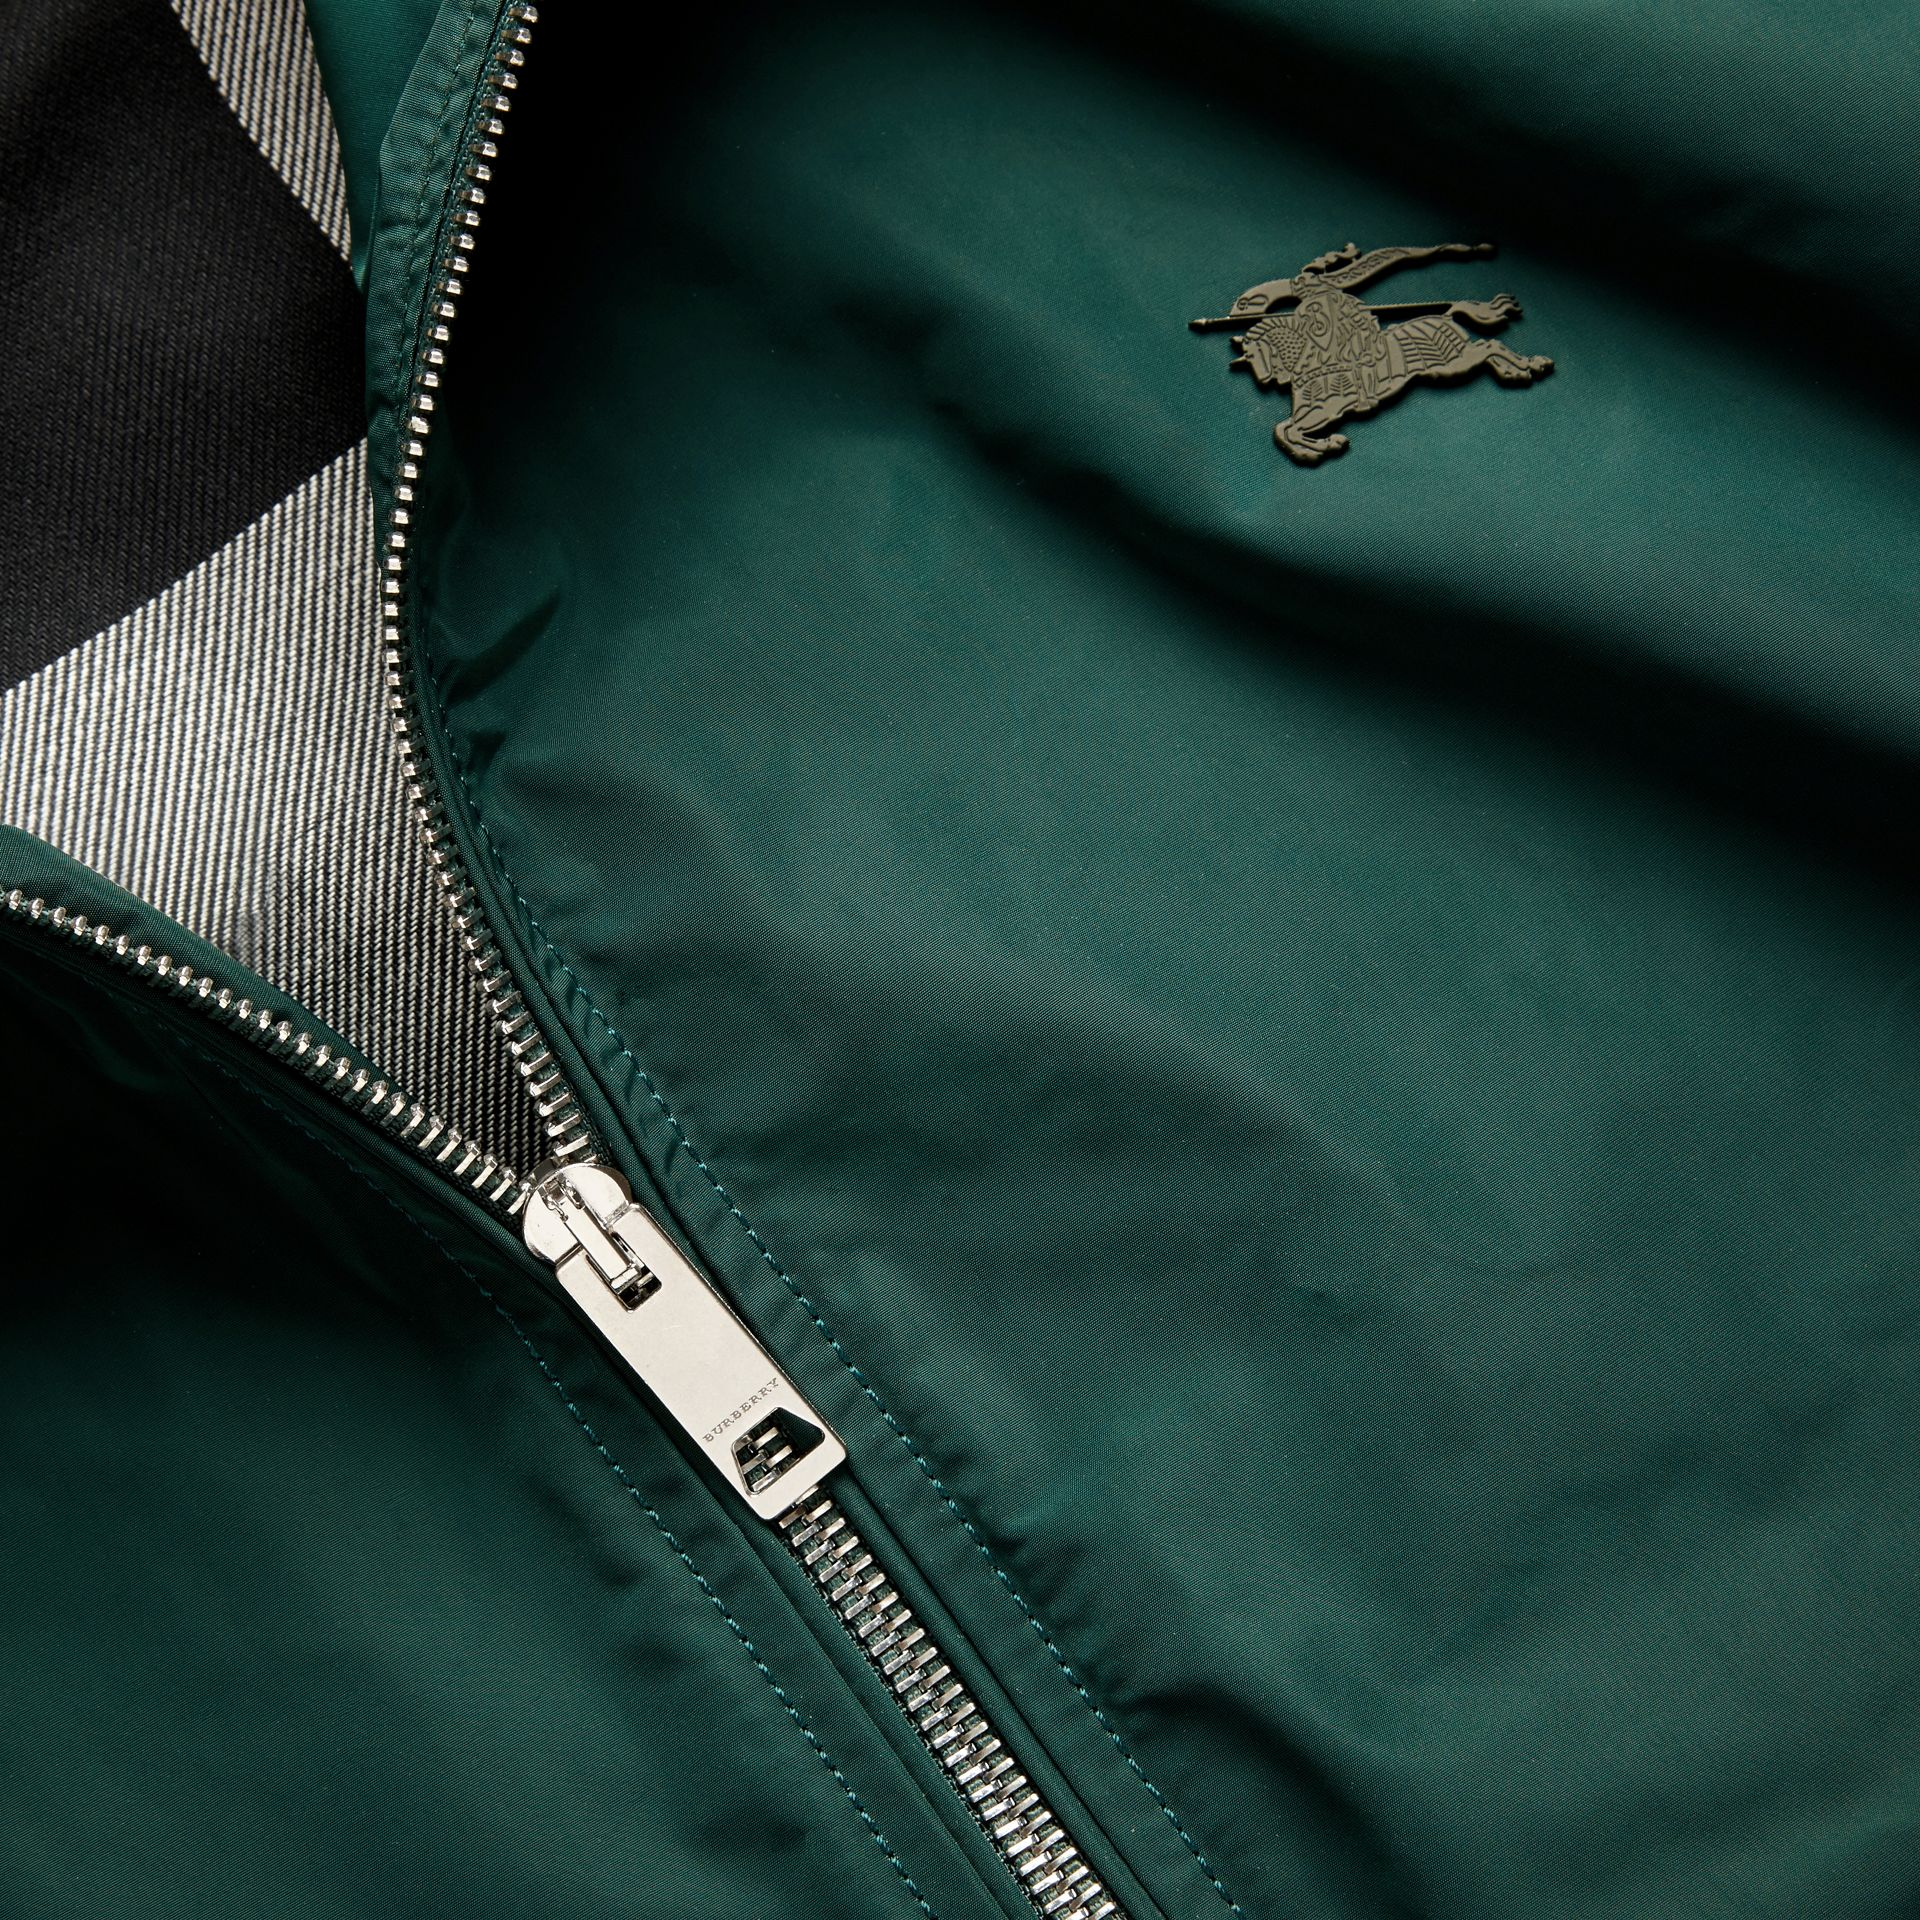 Lightweight Technical Jacket in Racing Green - Men | Burberry - gallery image 4